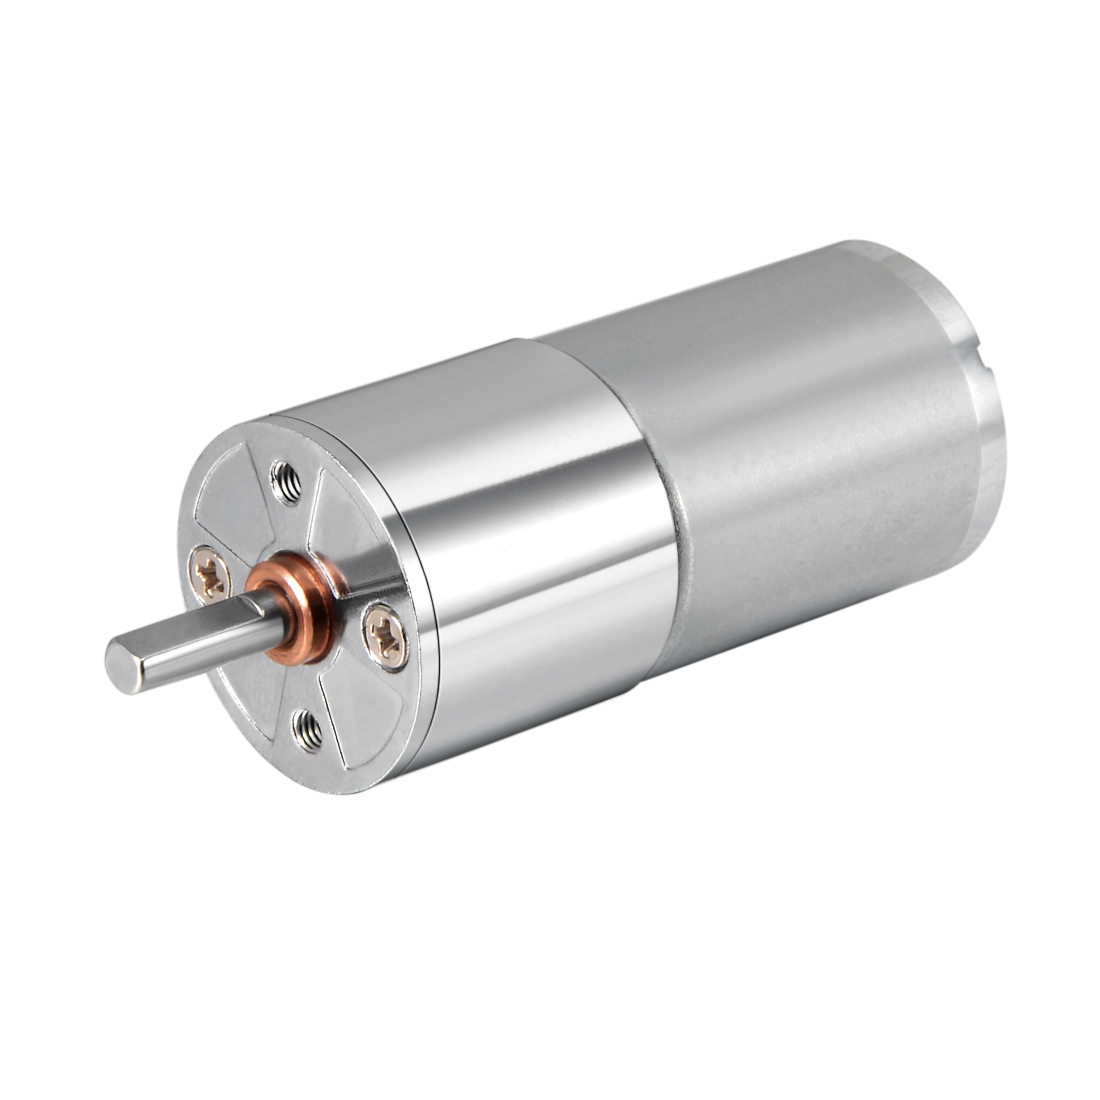 12V DC 30 RPM Gear Motor Reduction Gearbox Centric Output Shaft